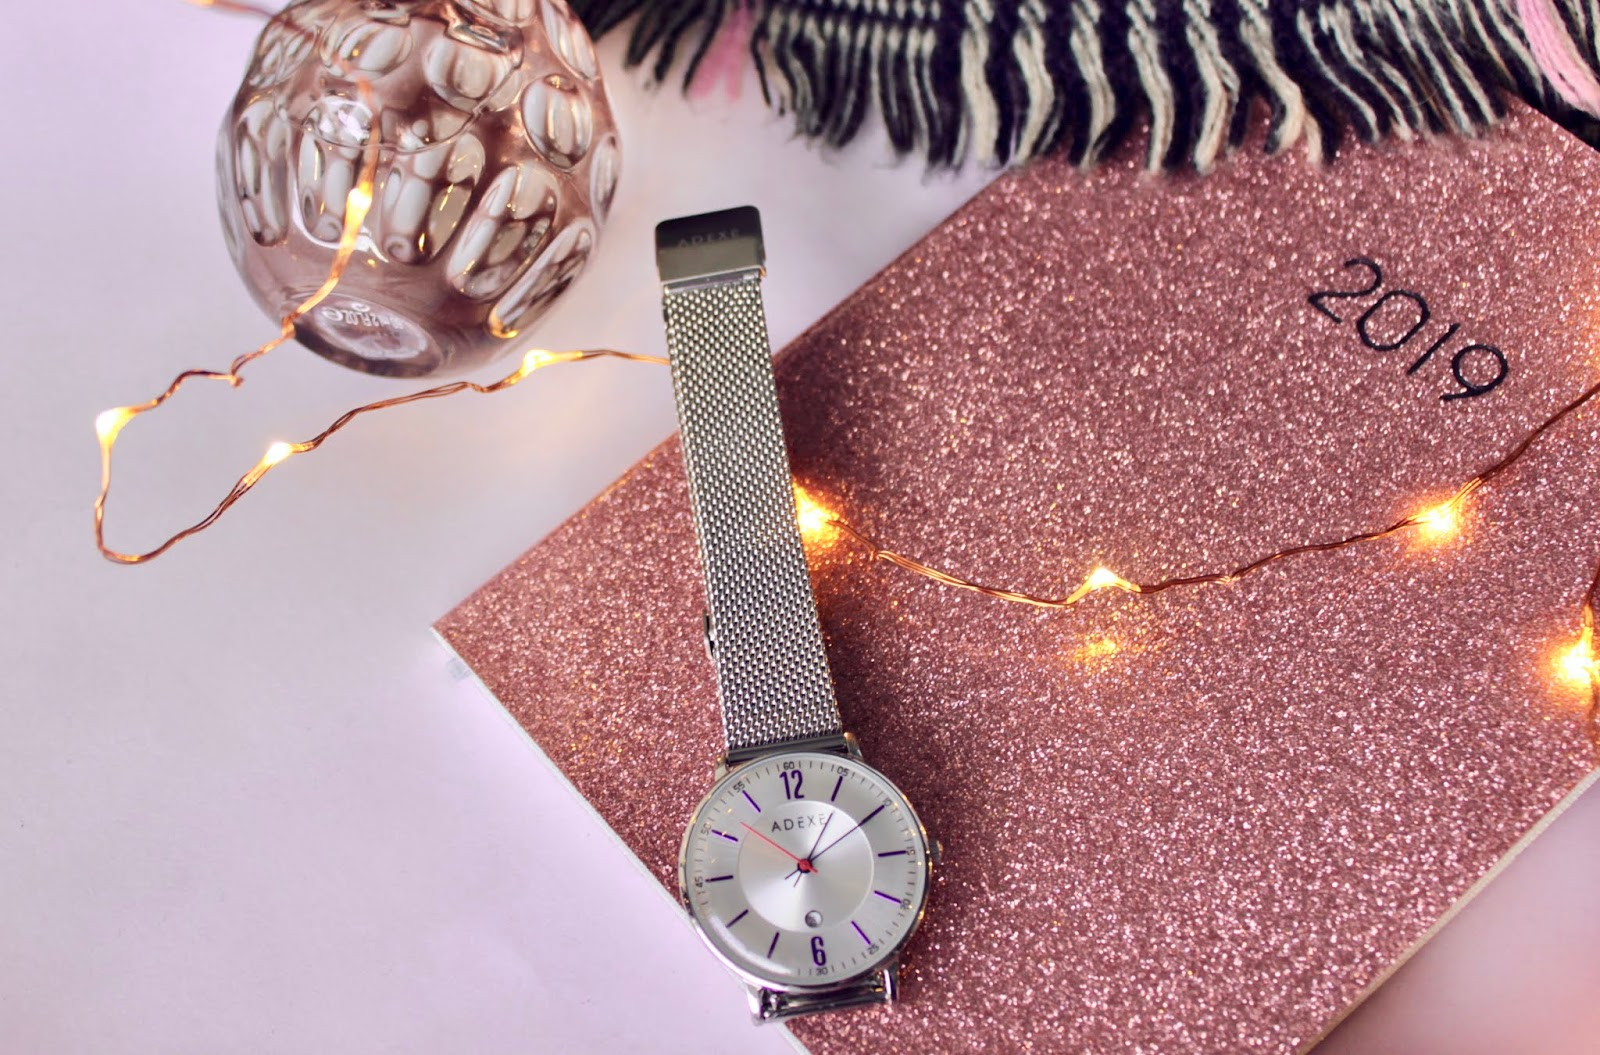 A silver ADEXE watch with some fairy lights and sparkle